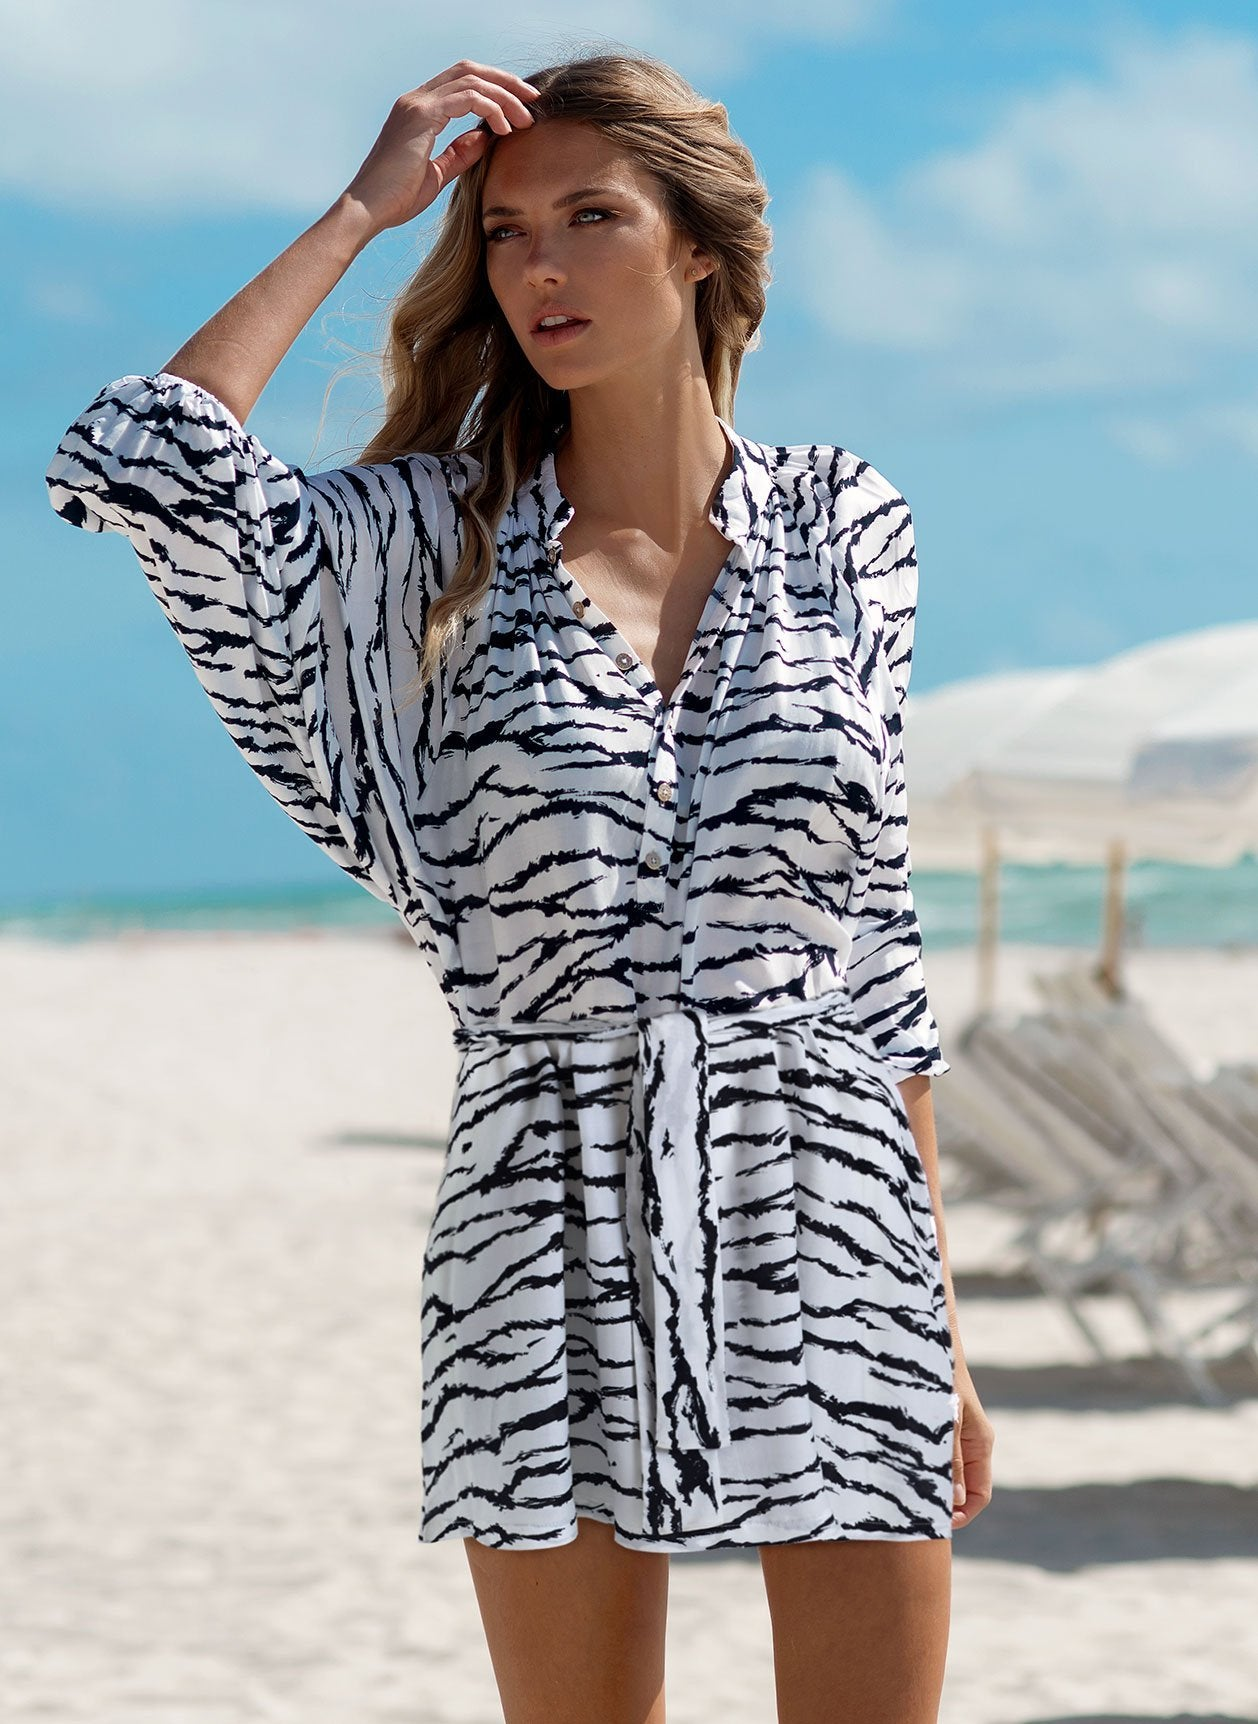 Amy Tiger Print Dress Lifestyle